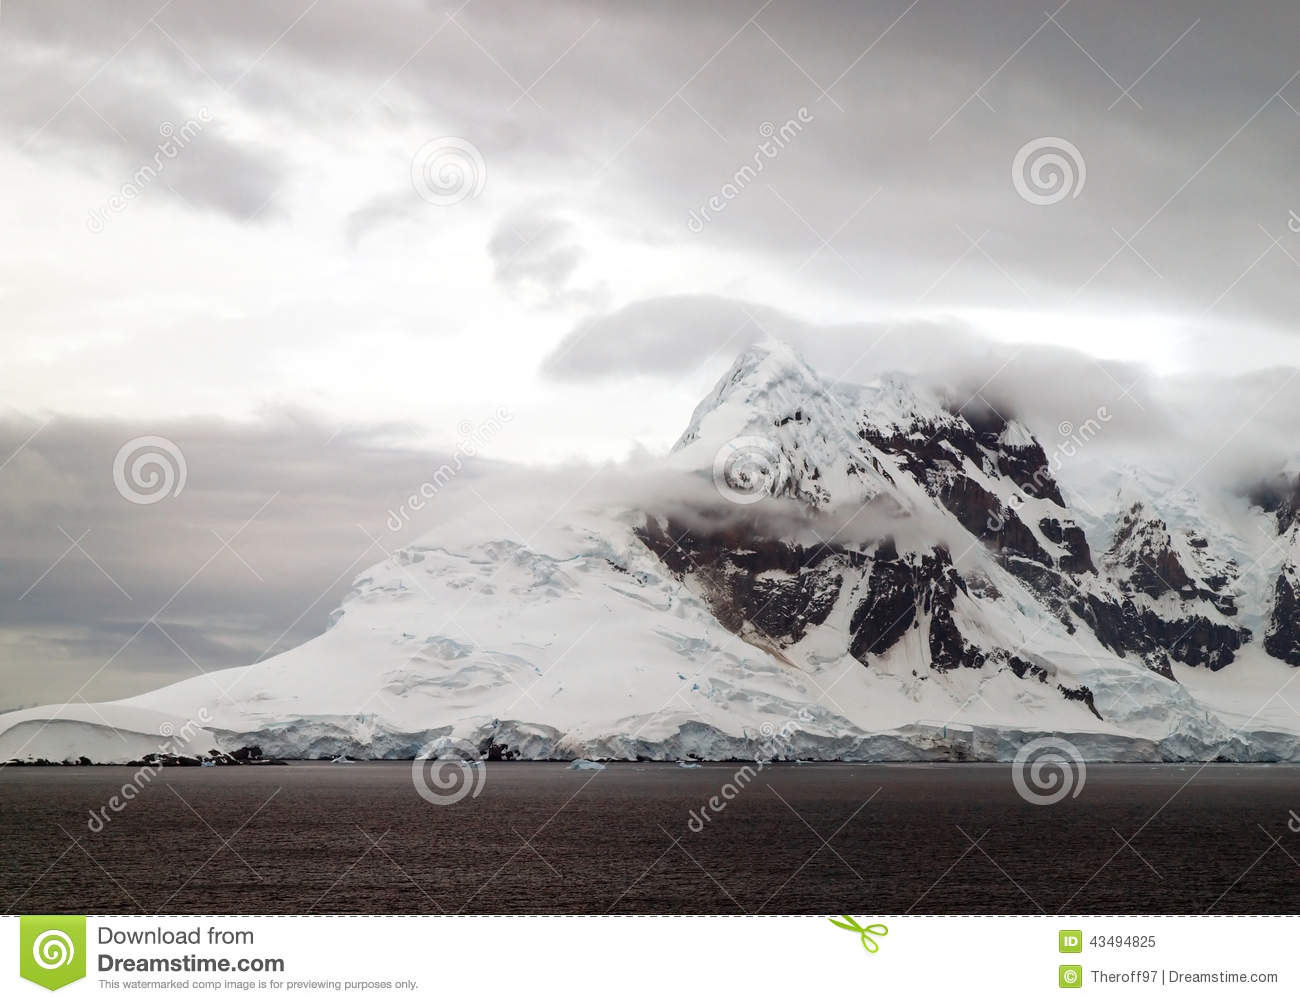 The Icy And Mountainous Landscape Of Antarctica